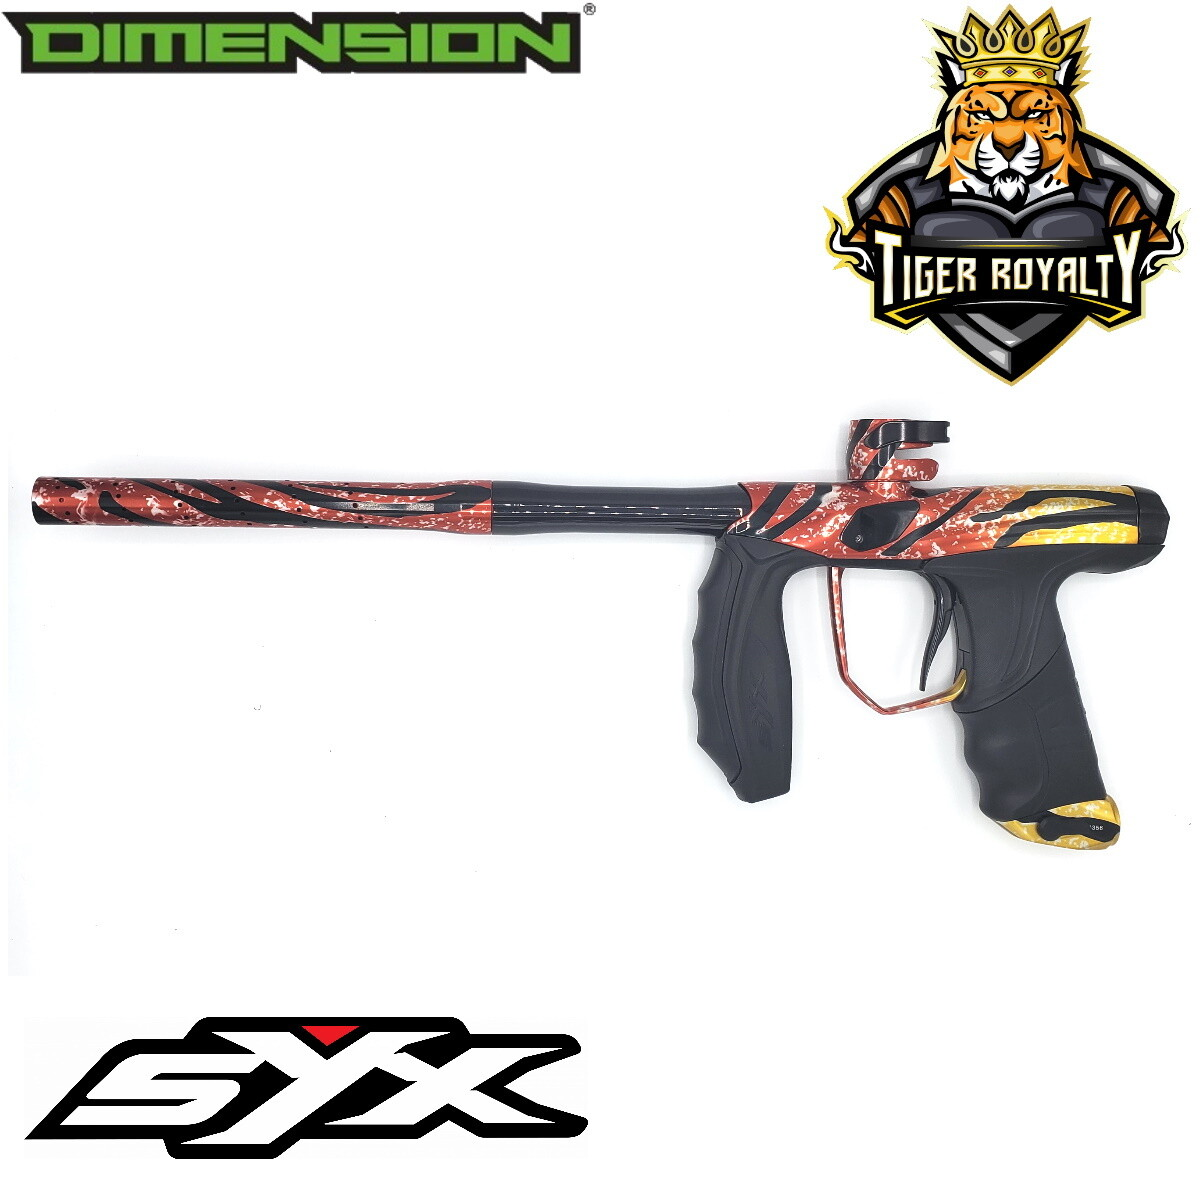 Empire SYX 1.5 - Dimension Limited Edition 1 of 1 / Tiger Royalty - Blaze